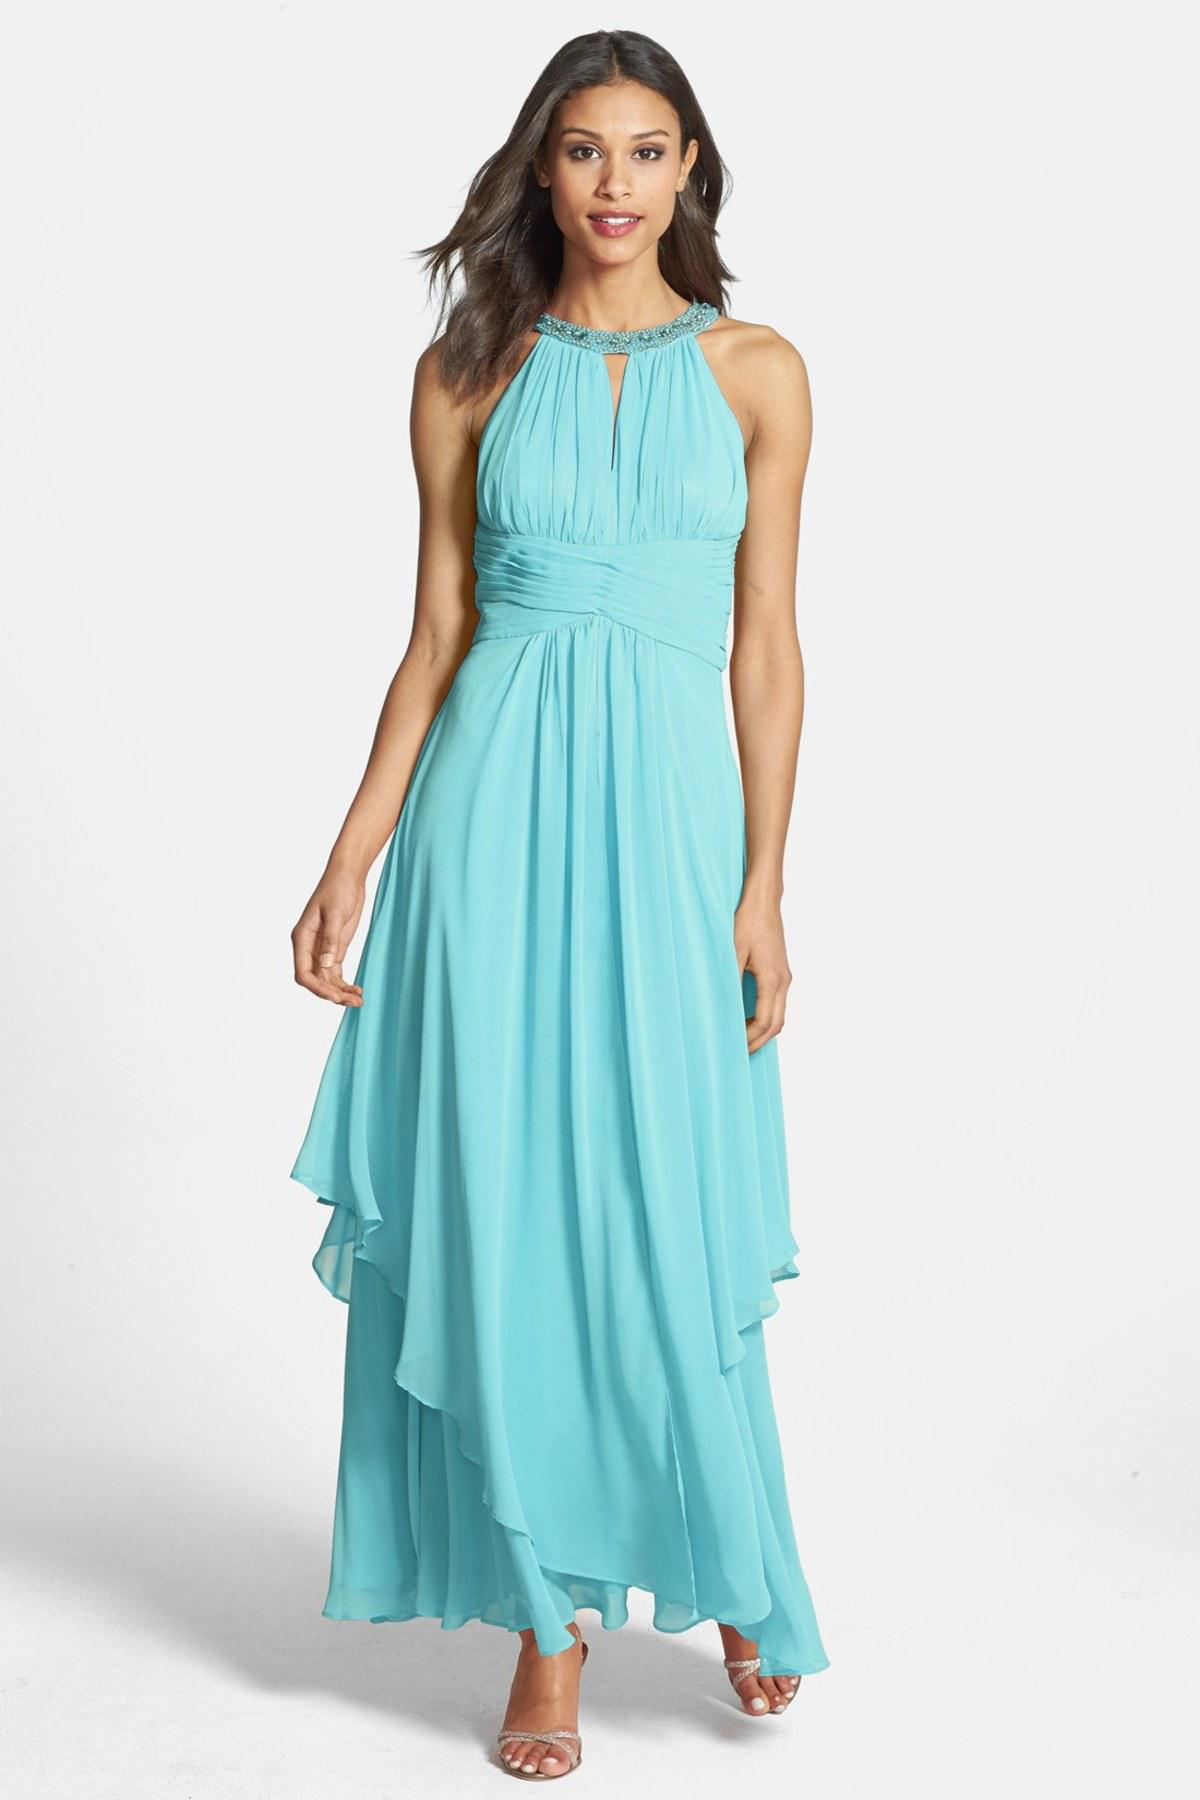 Lyst - Eliza J Embellished Tiered Chiffon Halter Gown in Blue